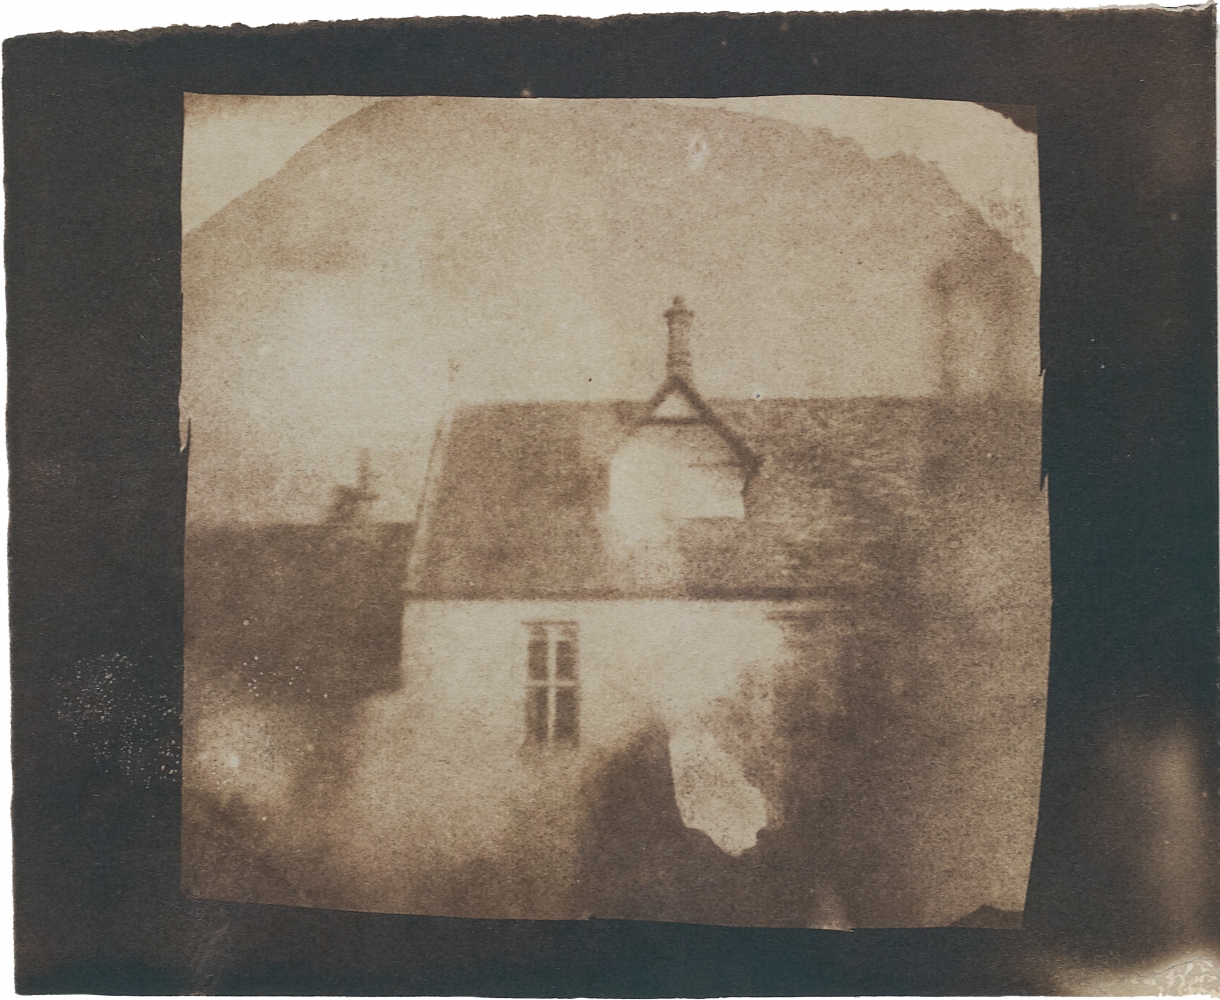 William Henry Fox TALBOT (English, 1800-1877) Stable roofline, northeast courtyard, Lacock Abbey, likely September 1840 Salt print from a photogenic drawing or calotype negative 8.0 x 8.2 cm on 9.3 x 11.6 cm paper